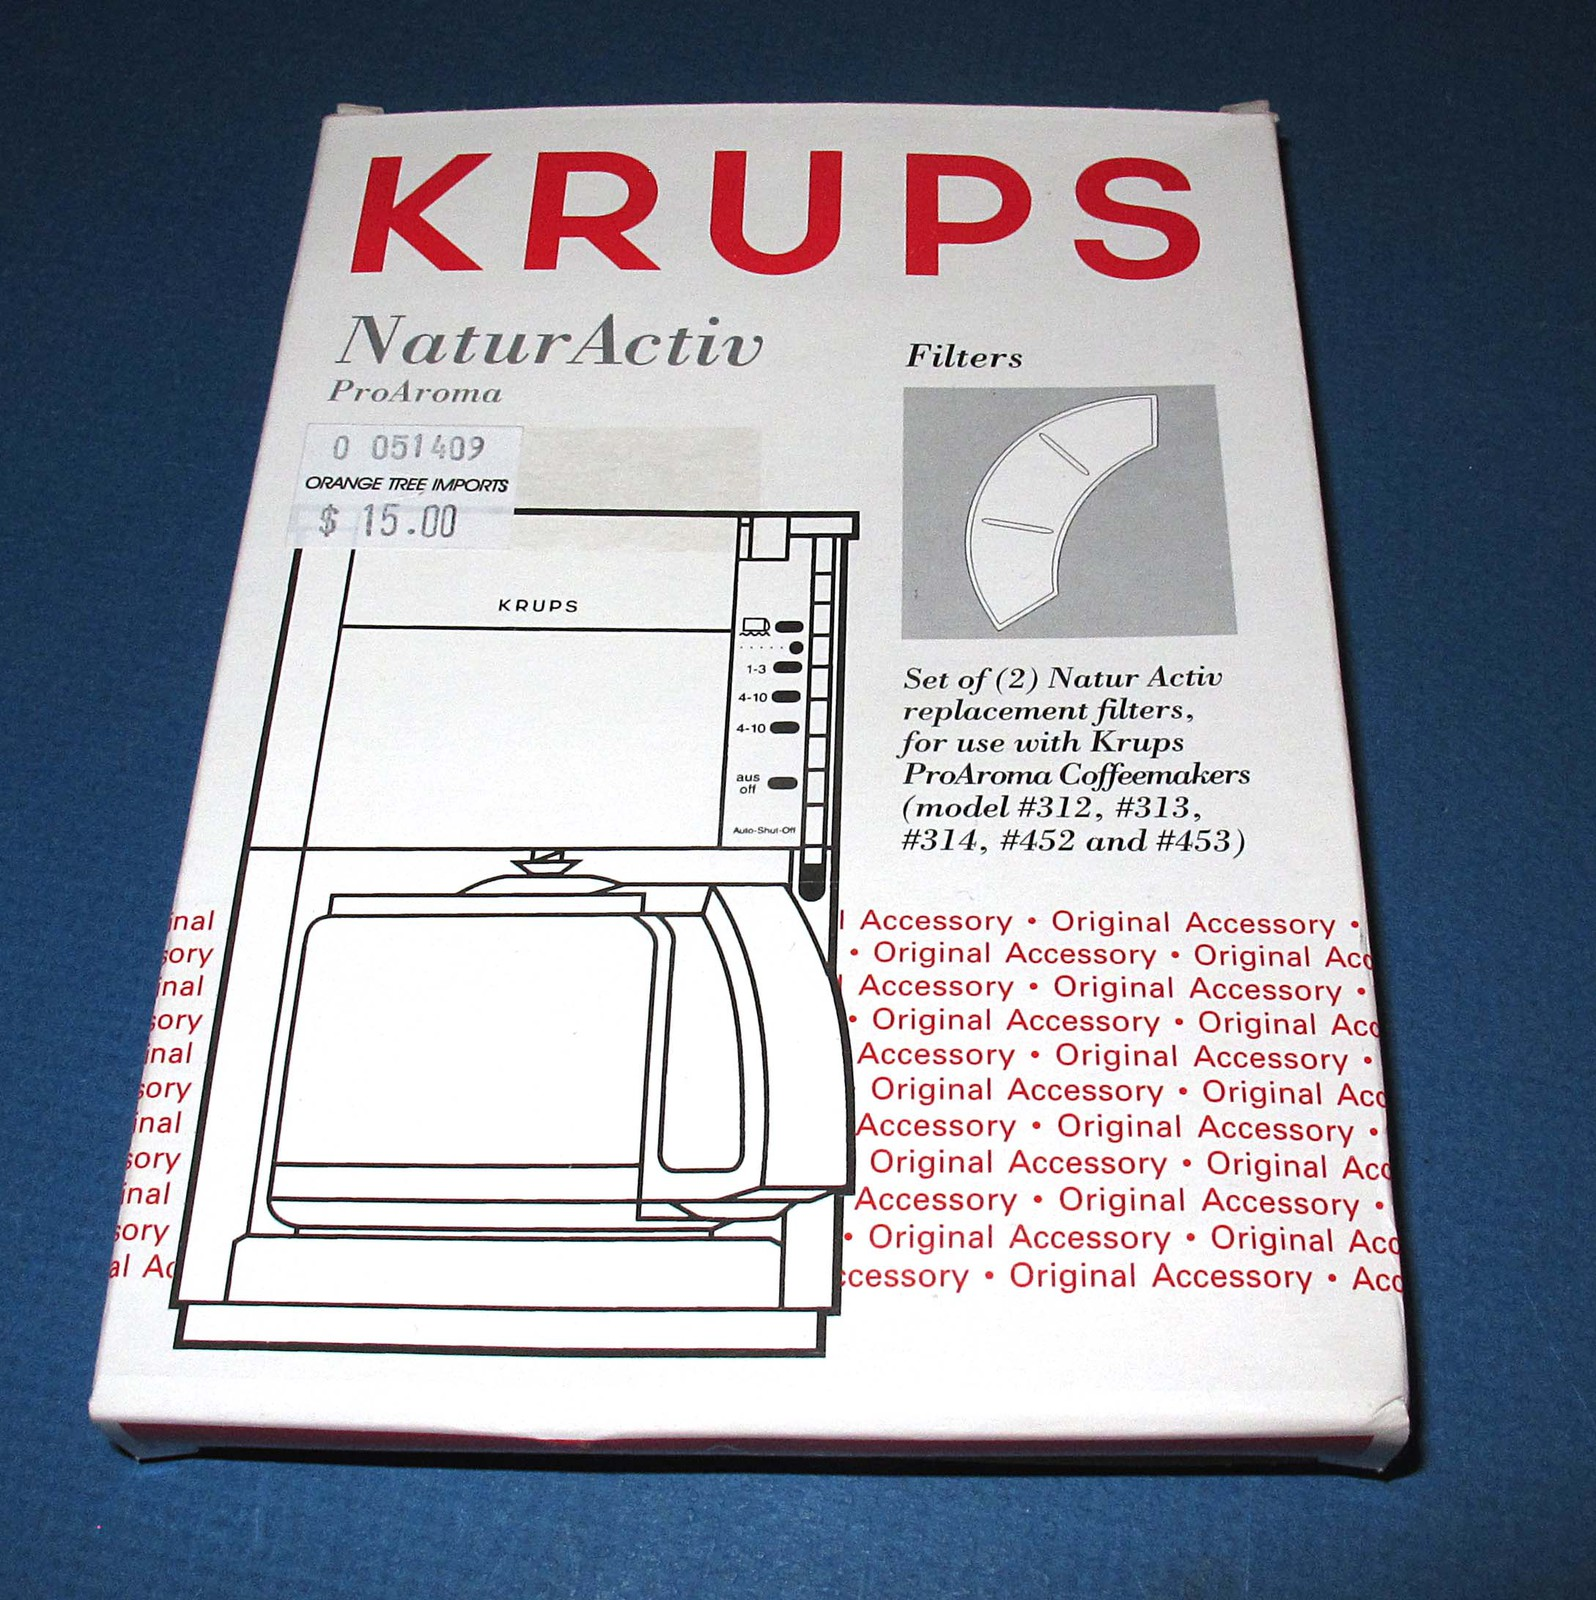 2 krups original natur activ proaroma coffee maker filters for 312 313 314 452 4 replacement. Black Bedroom Furniture Sets. Home Design Ideas